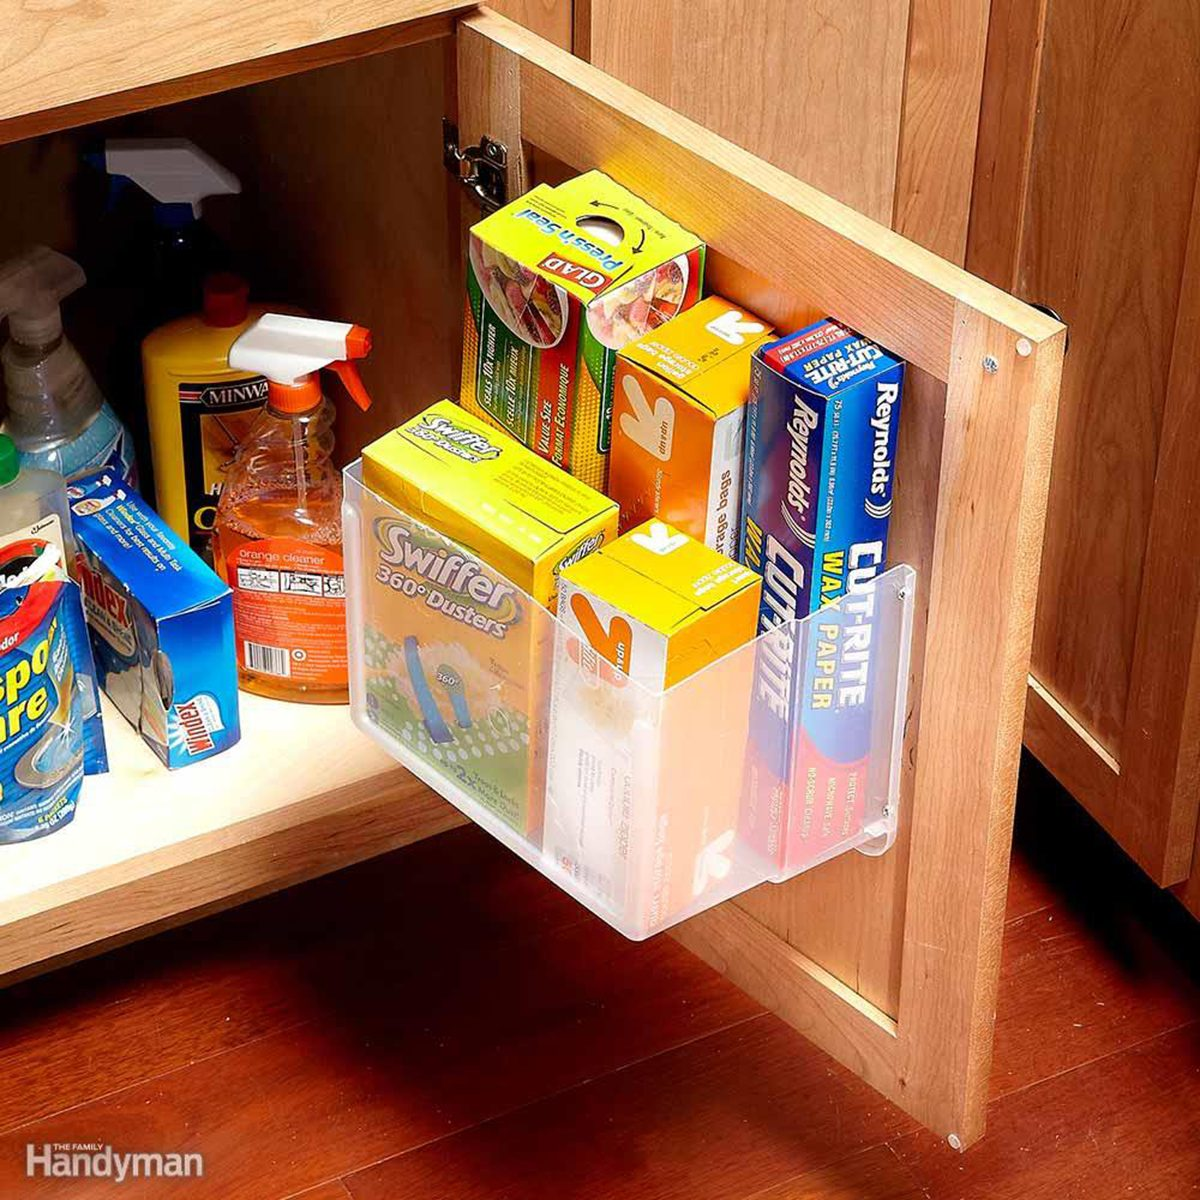 Boxes in a shelf on the door of a cabinet